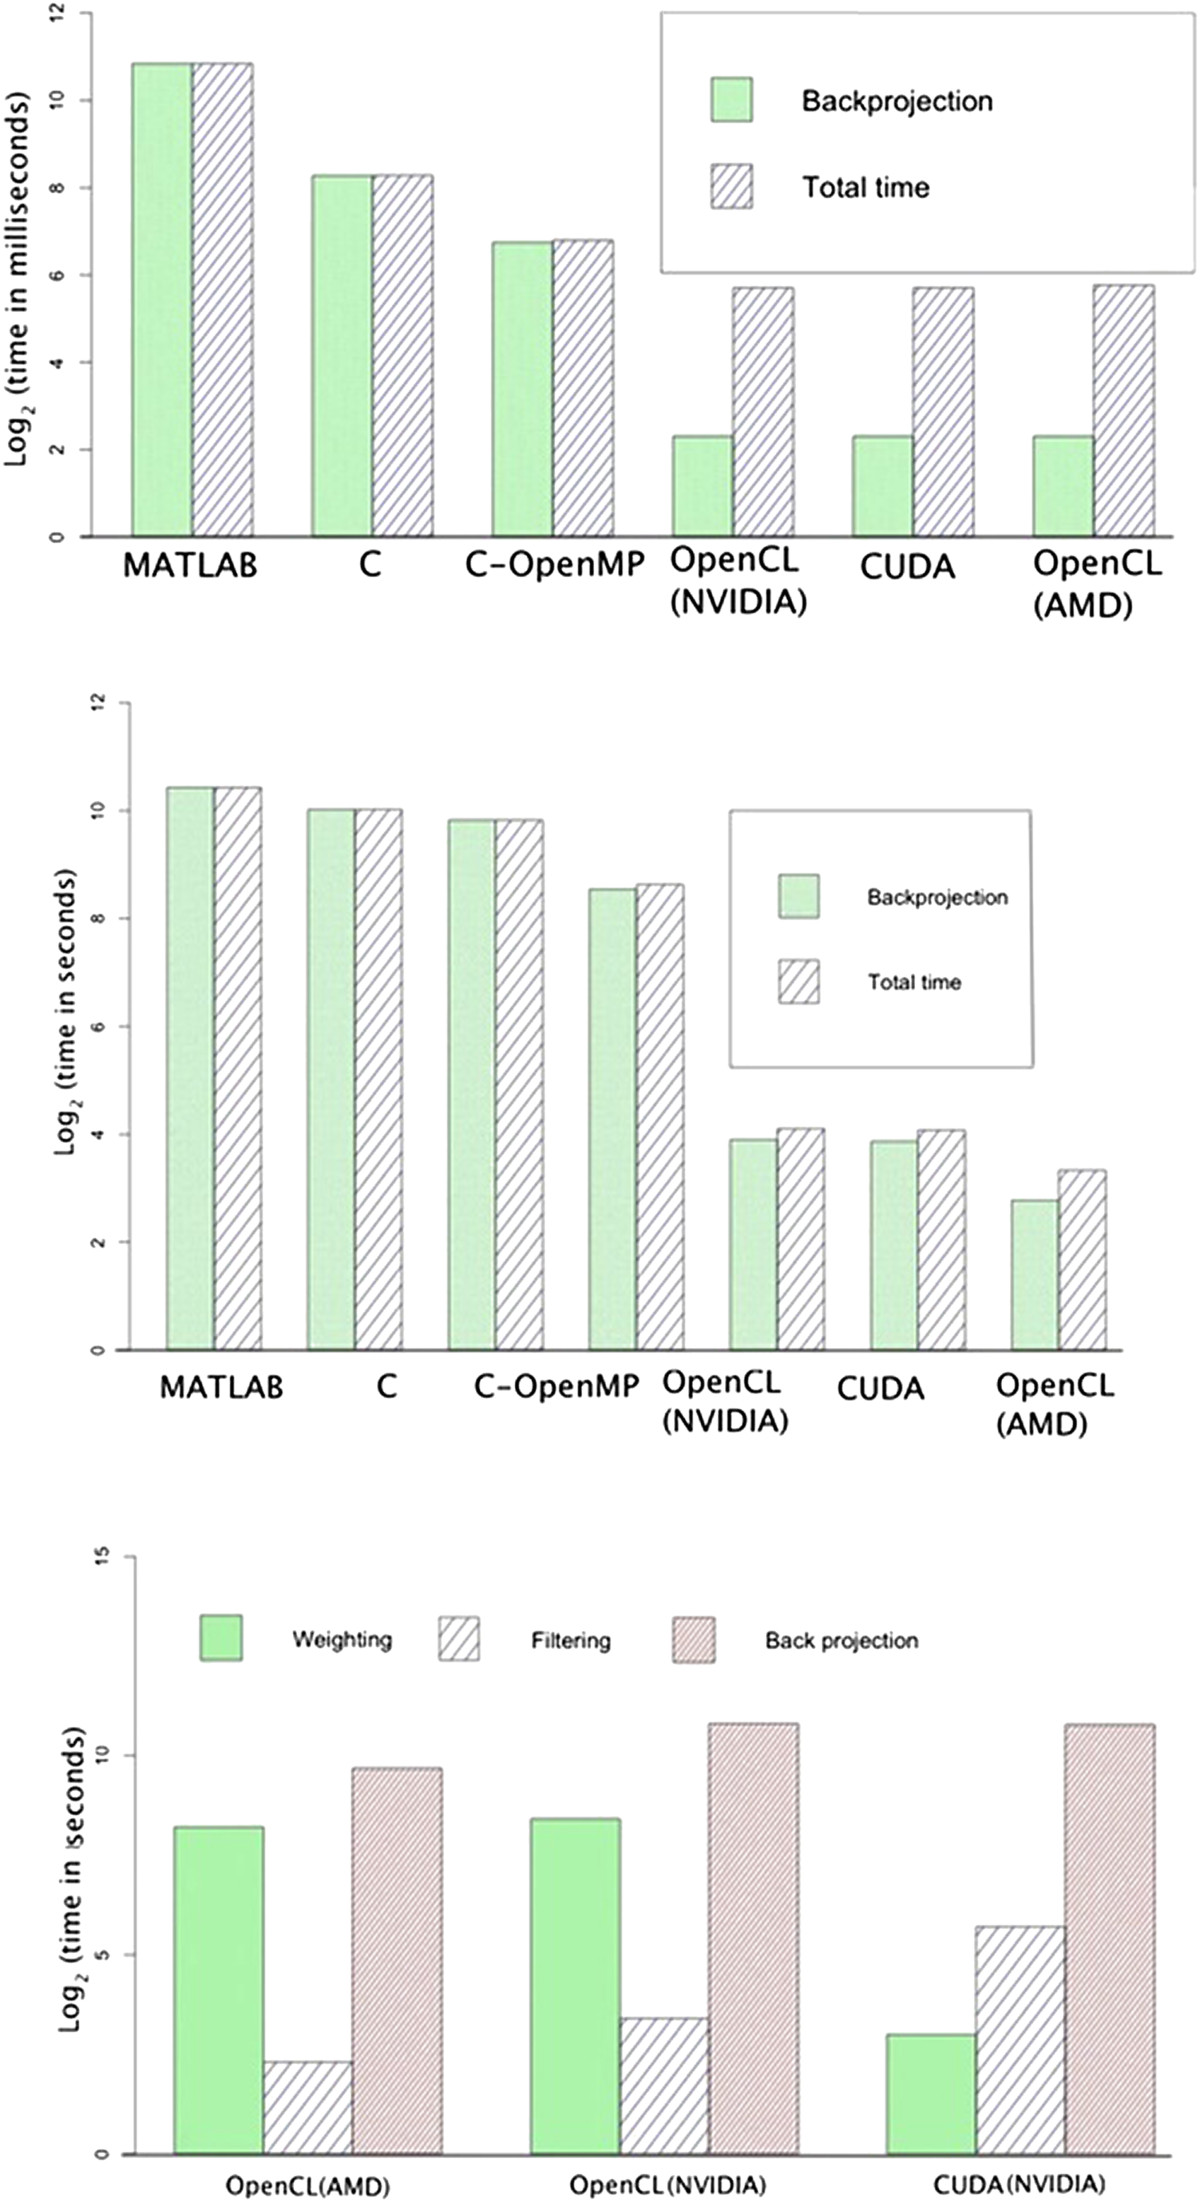 http://static-content.springer.com/image/art%3A10.1186%2F1756-0500-7-582/MediaObjects/13104_2014_Article_3133_Fig5_HTML.jpg